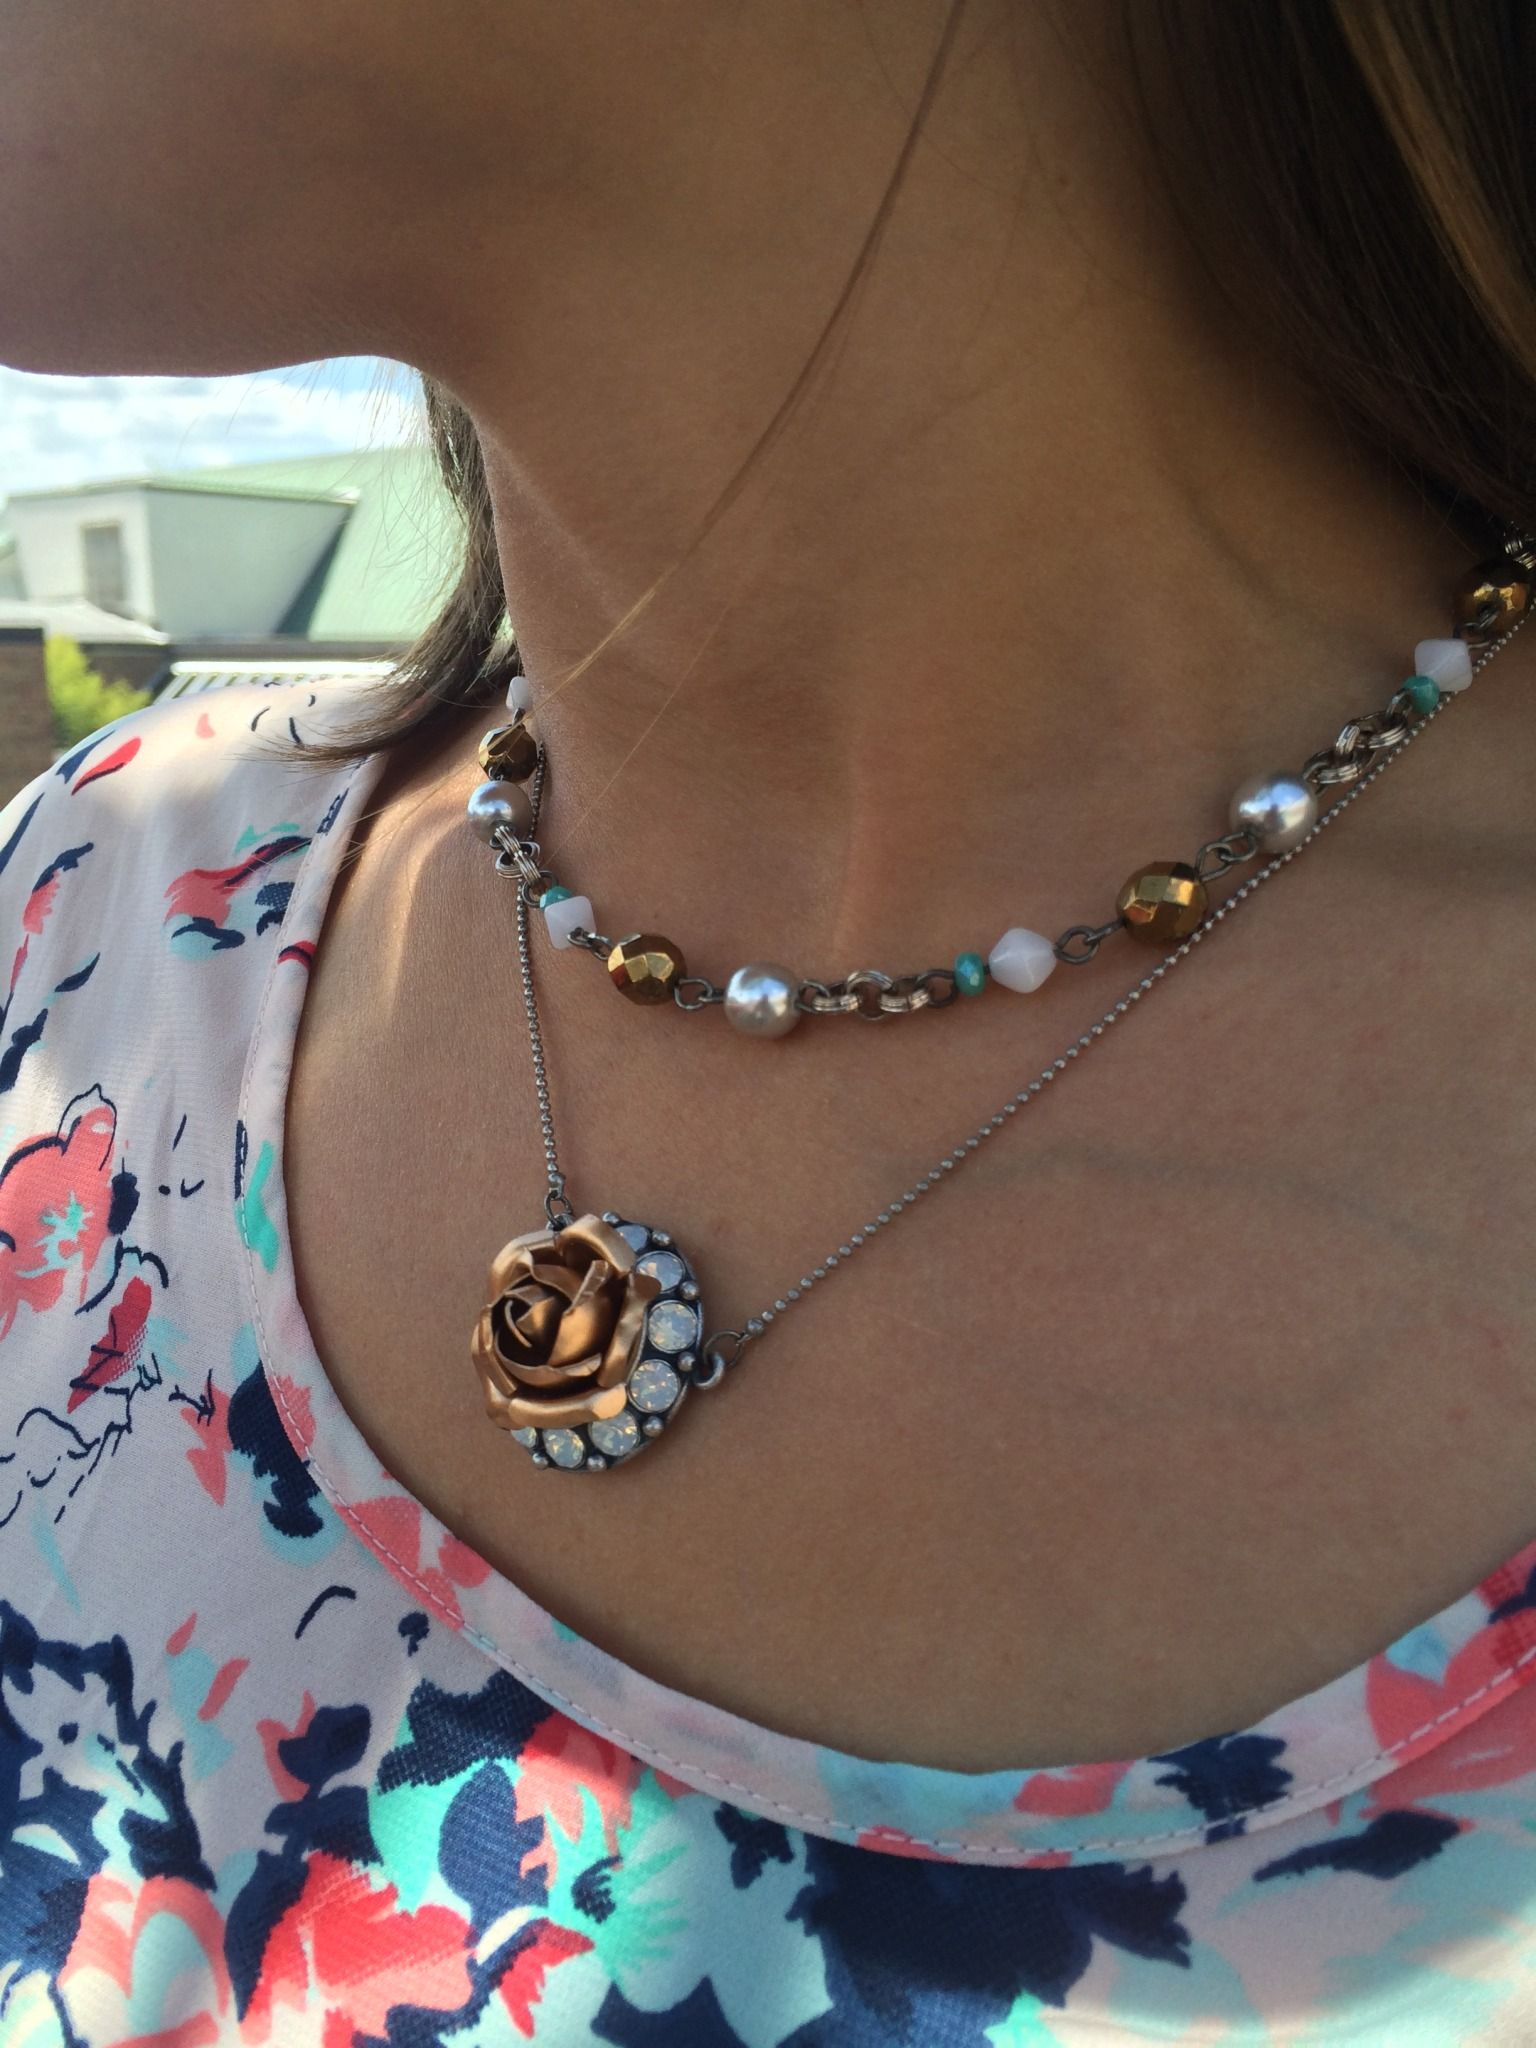 Sabika look necklace - Sabika Devoted Rose Necklace And Beaded Necklace